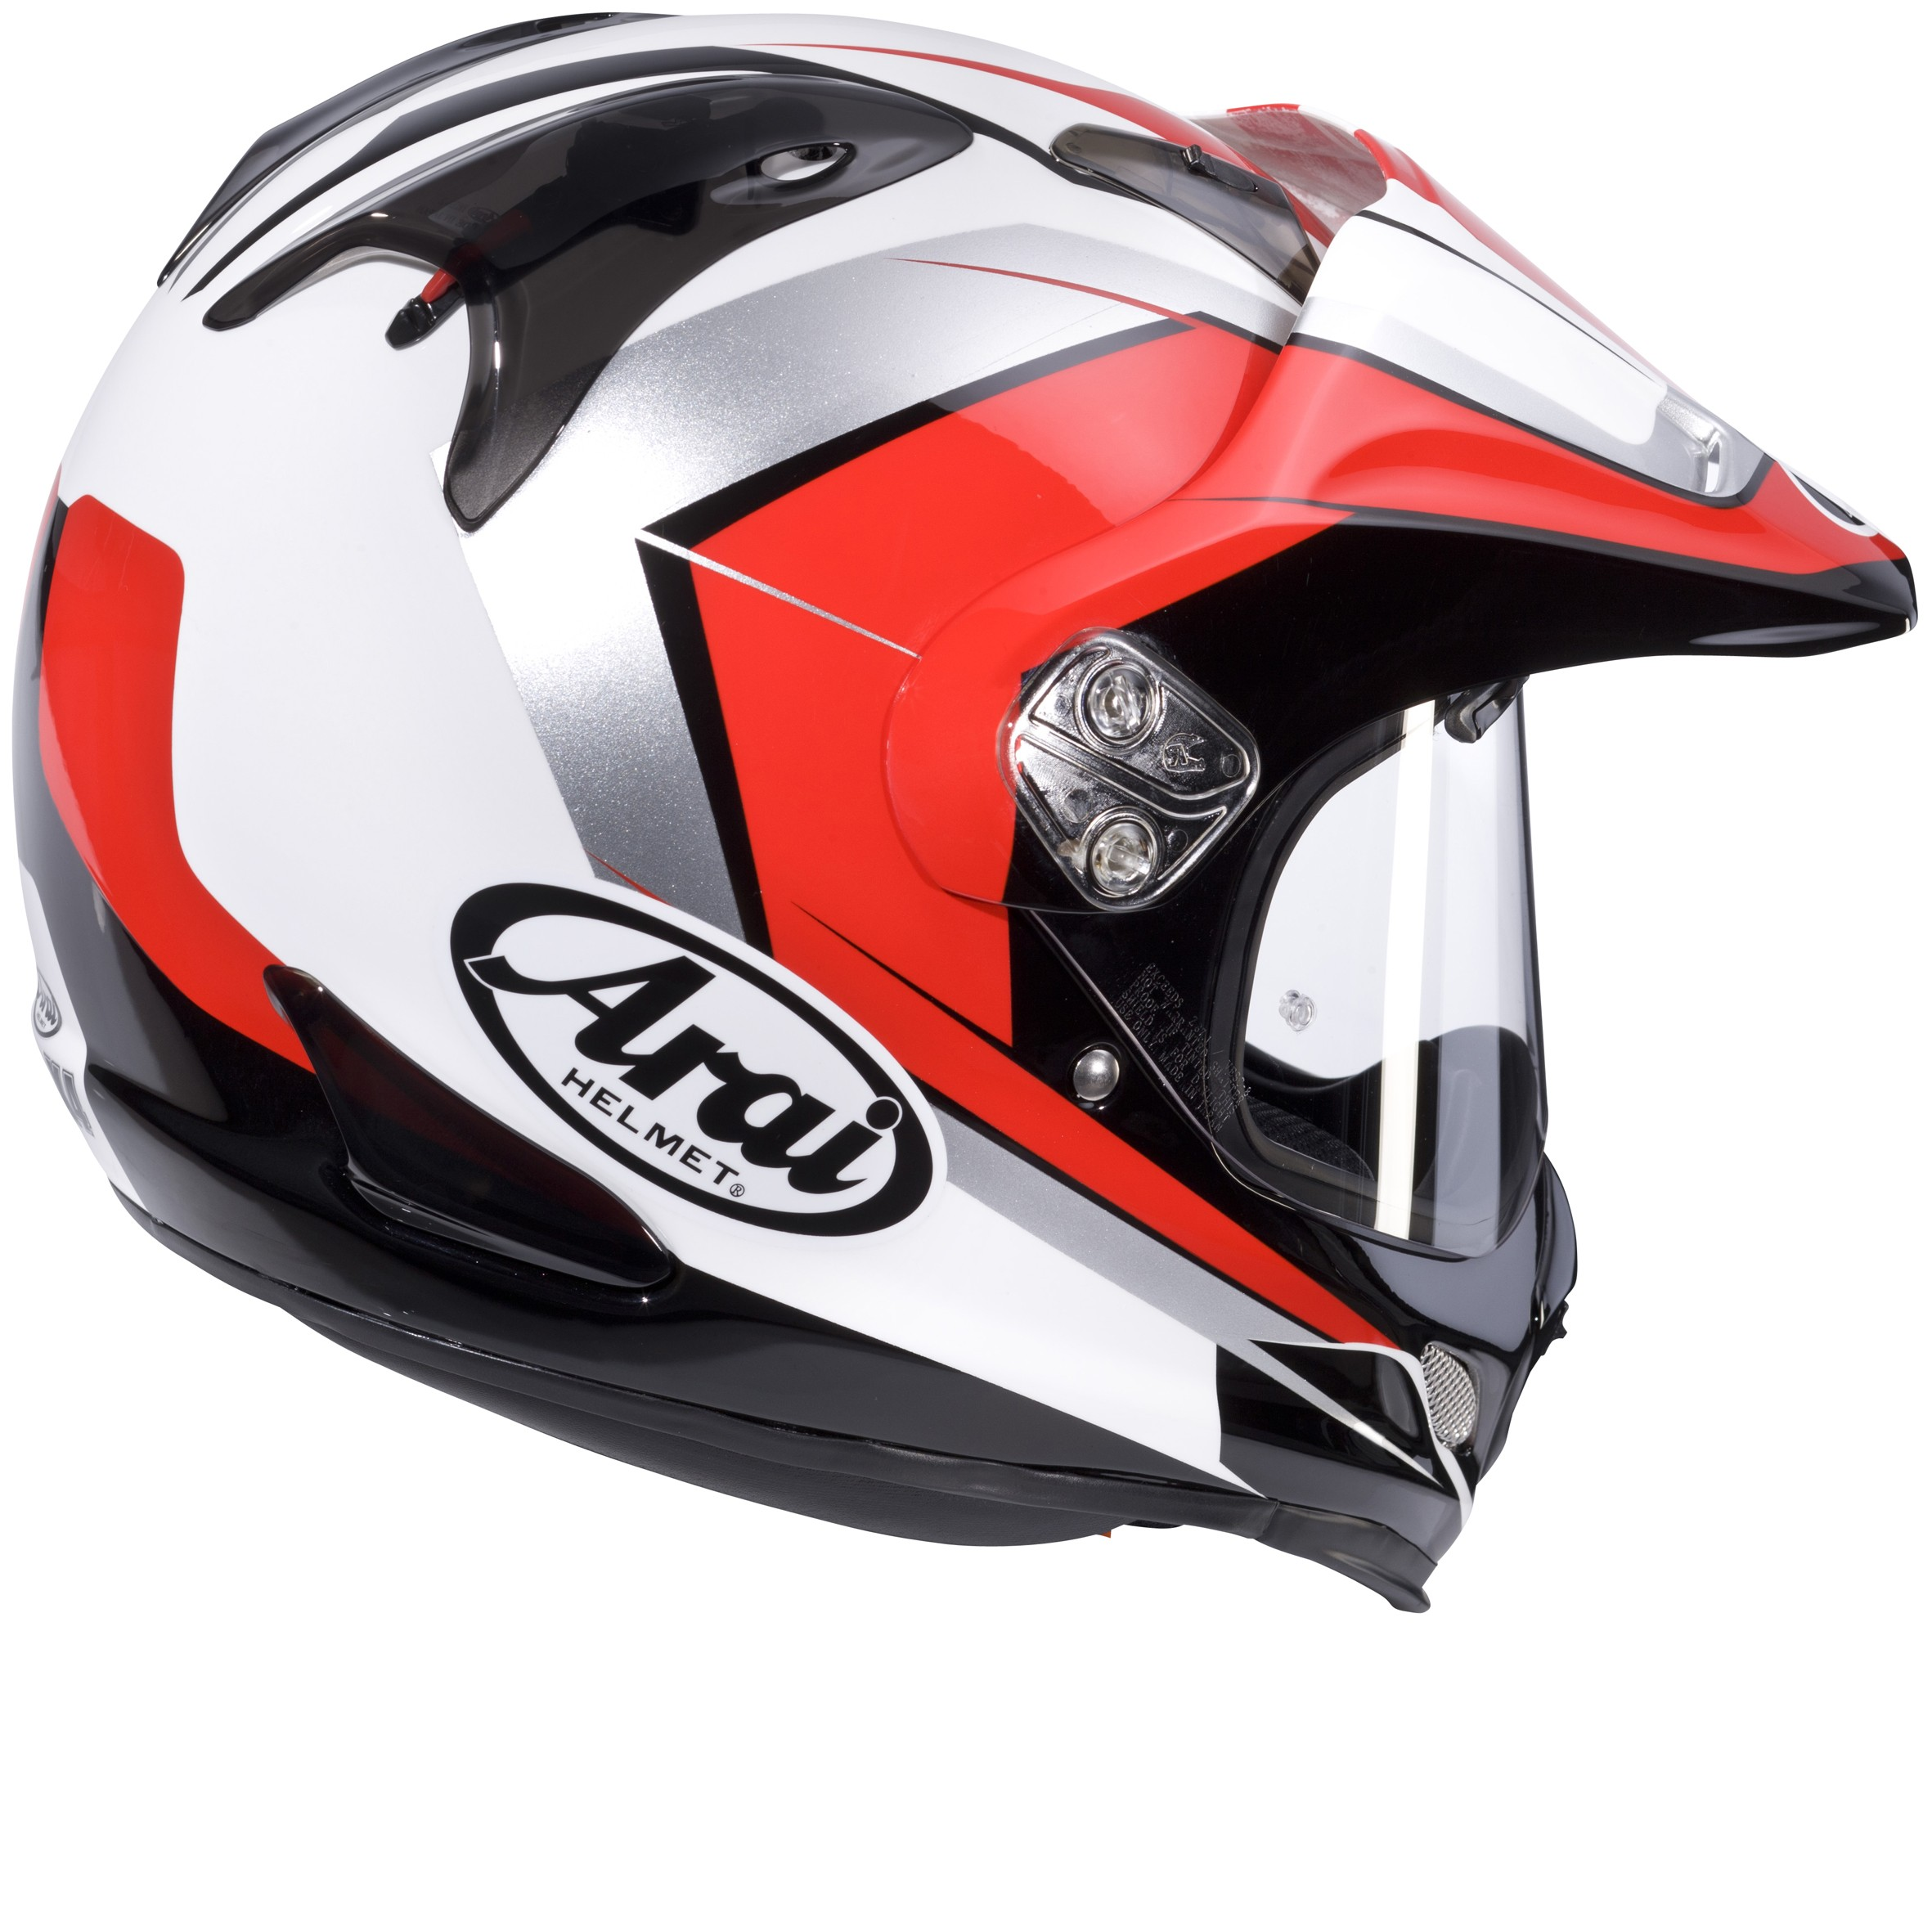 arai tour x 4 flare adventure helmet. Black Bedroom Furniture Sets. Home Design Ideas